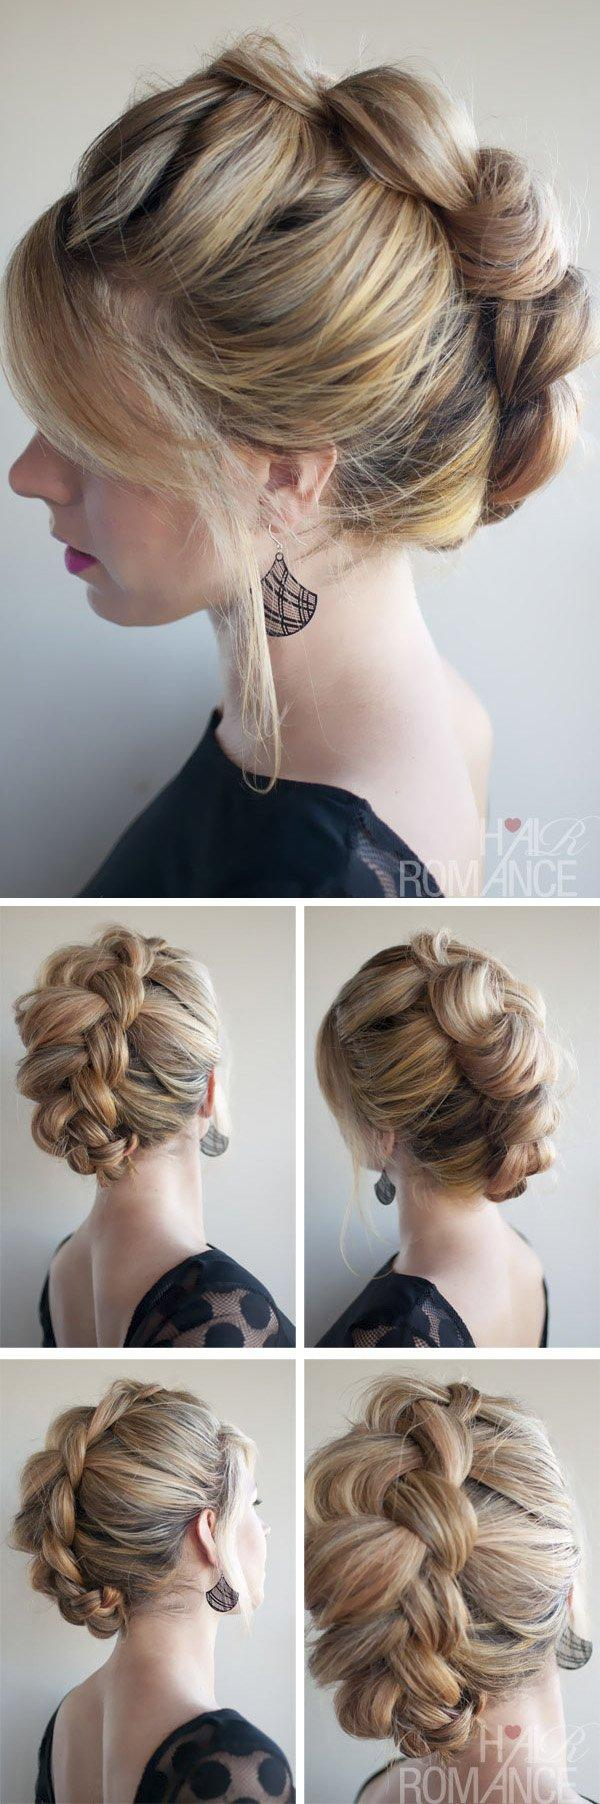 The Elegant Braid Hawk | Easy and Chic Hairstyles